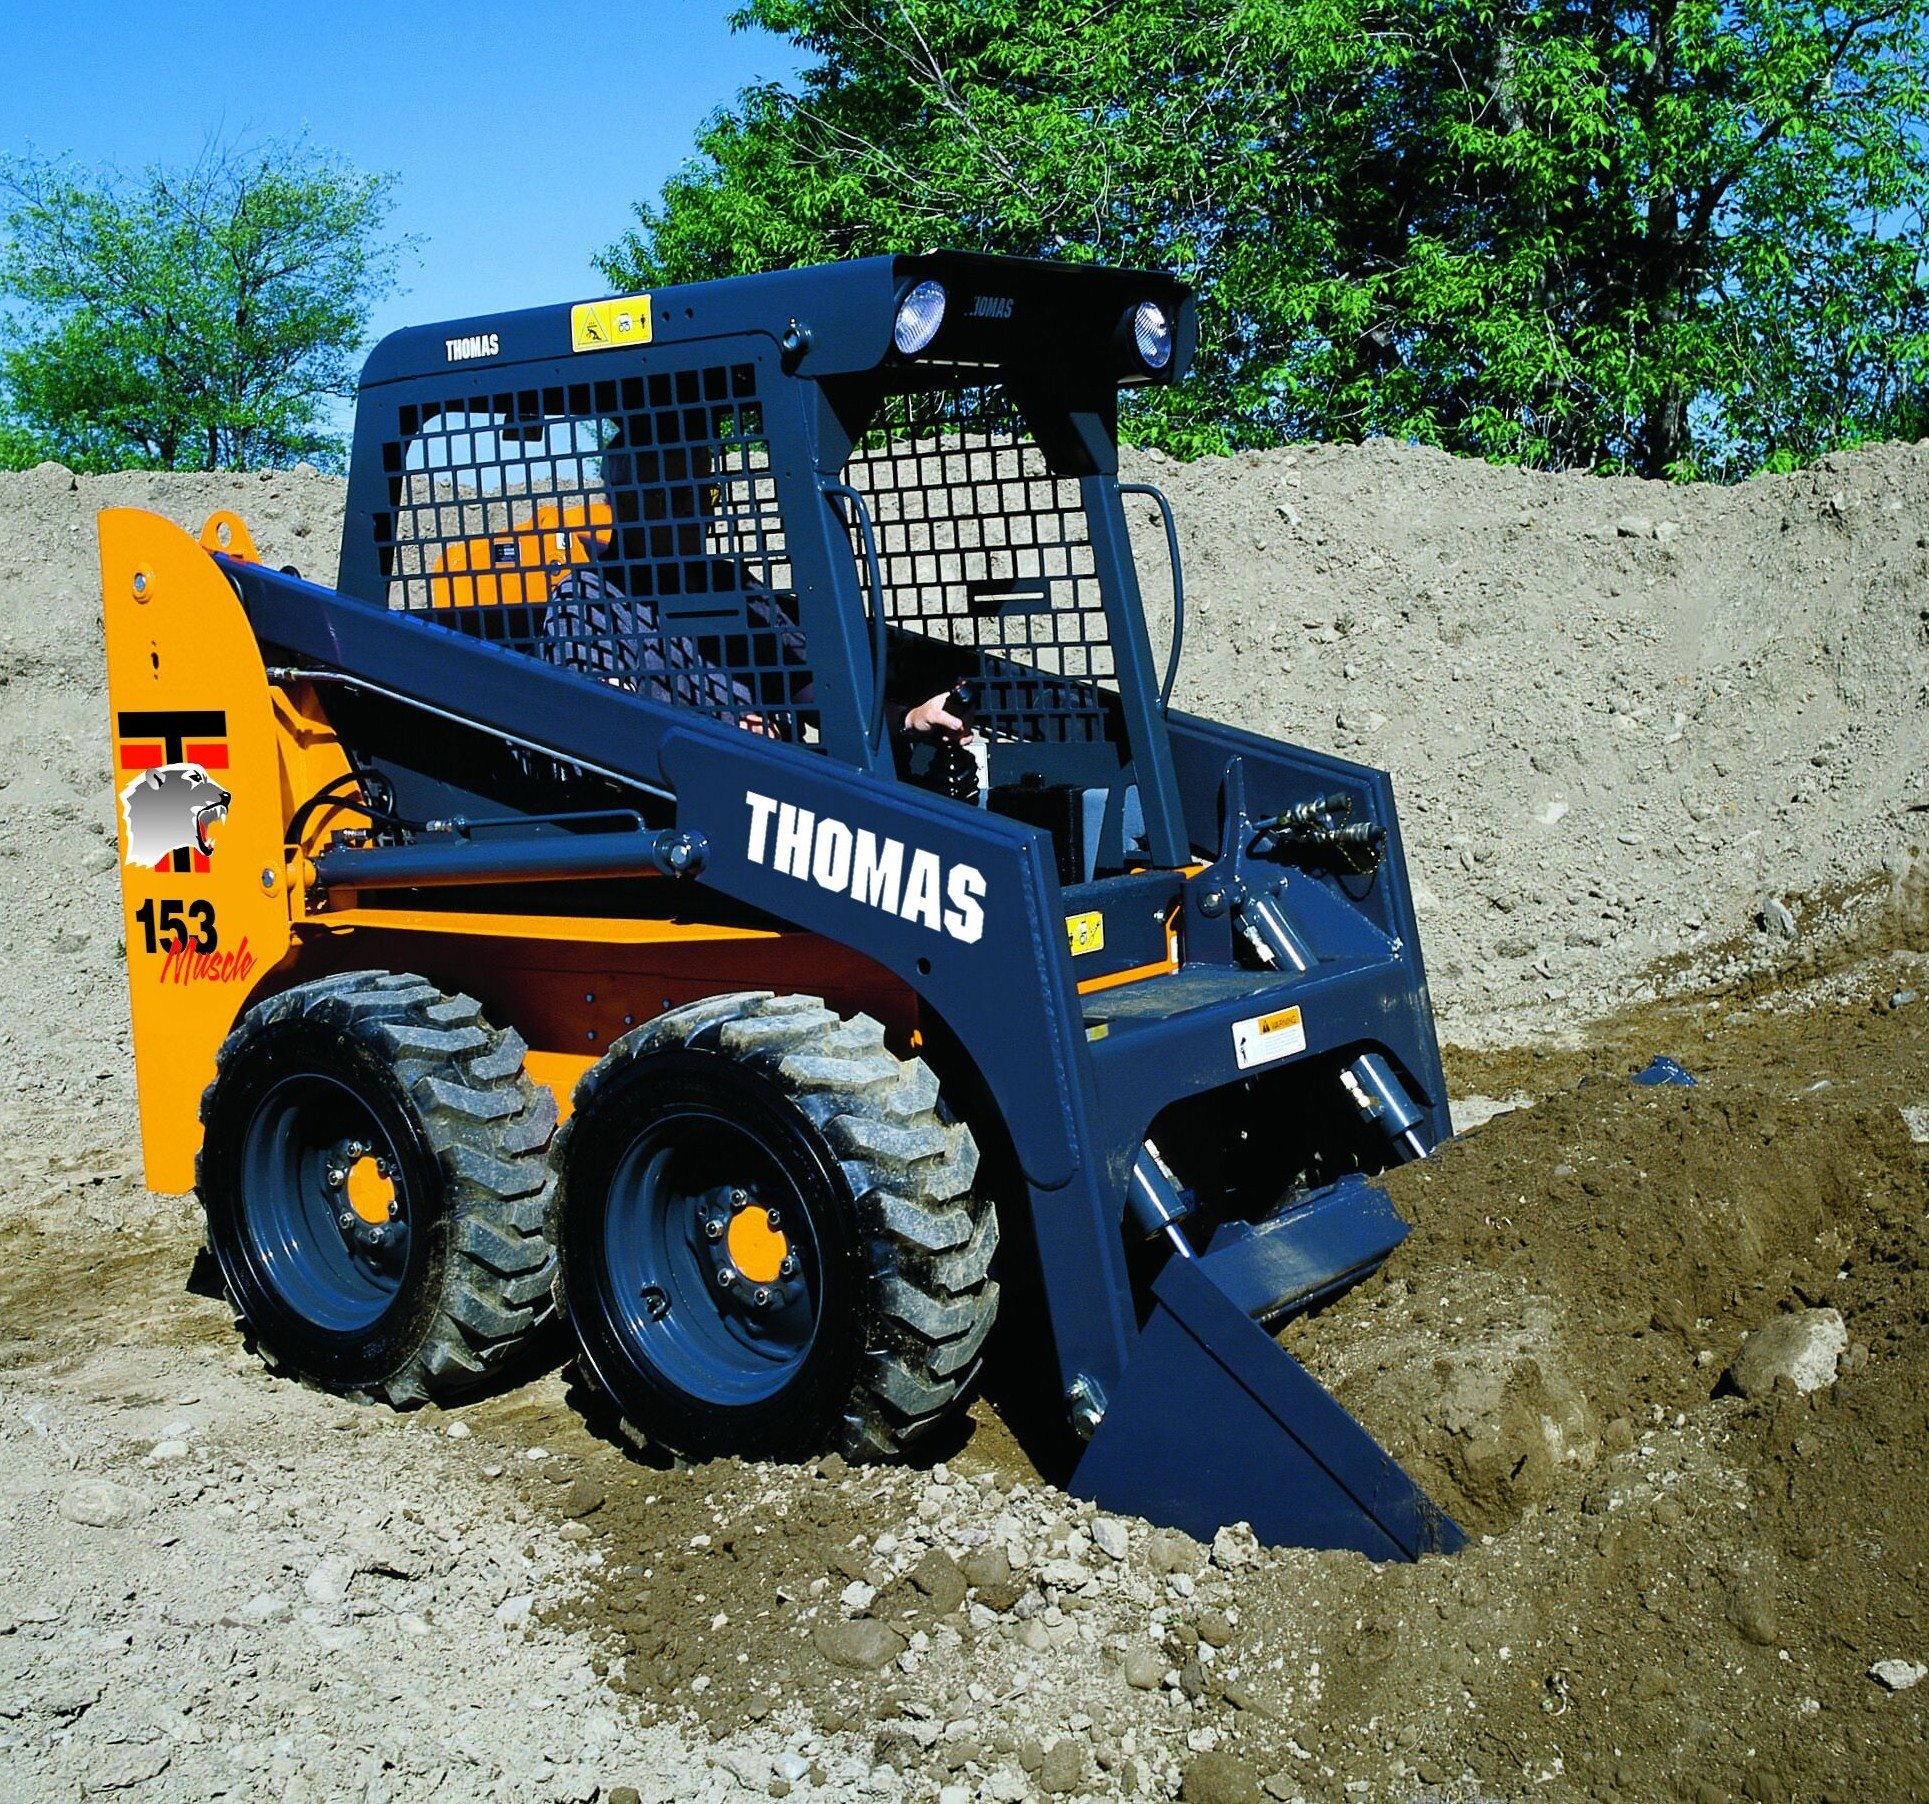 Farmfest 2008 In Minnesota Showcases Thomas Skid Steer Loaders